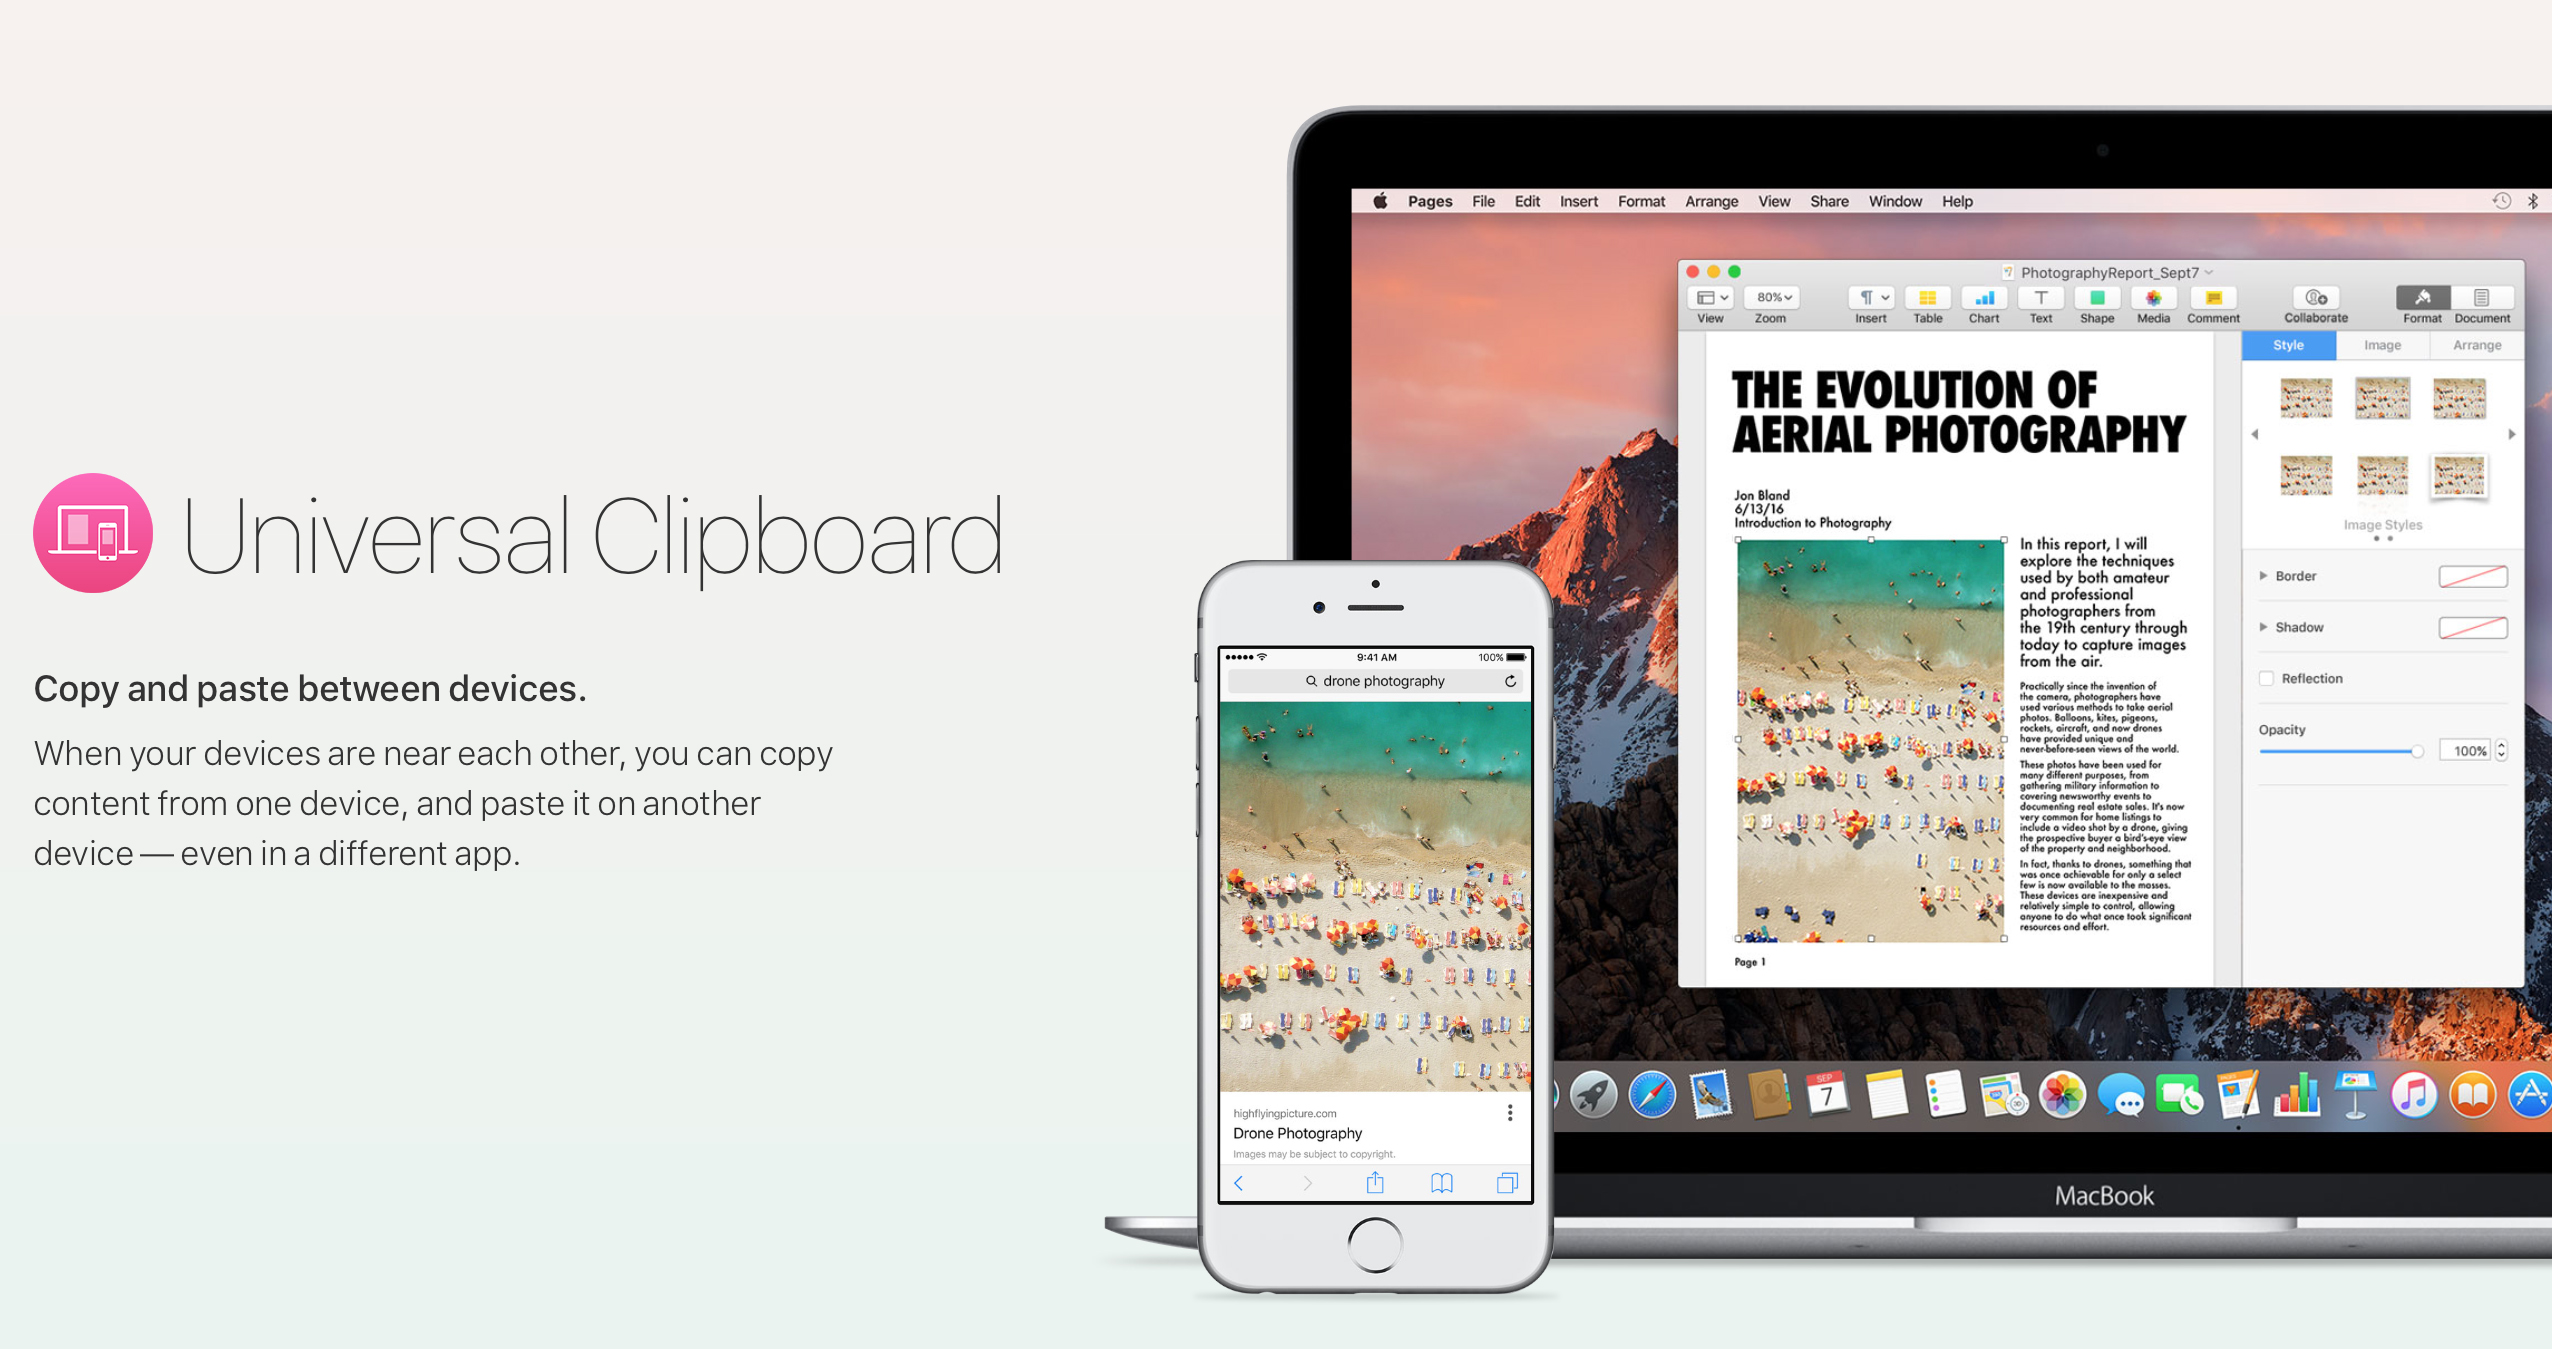 Clipboard makes copying content from Apple devices seamless.